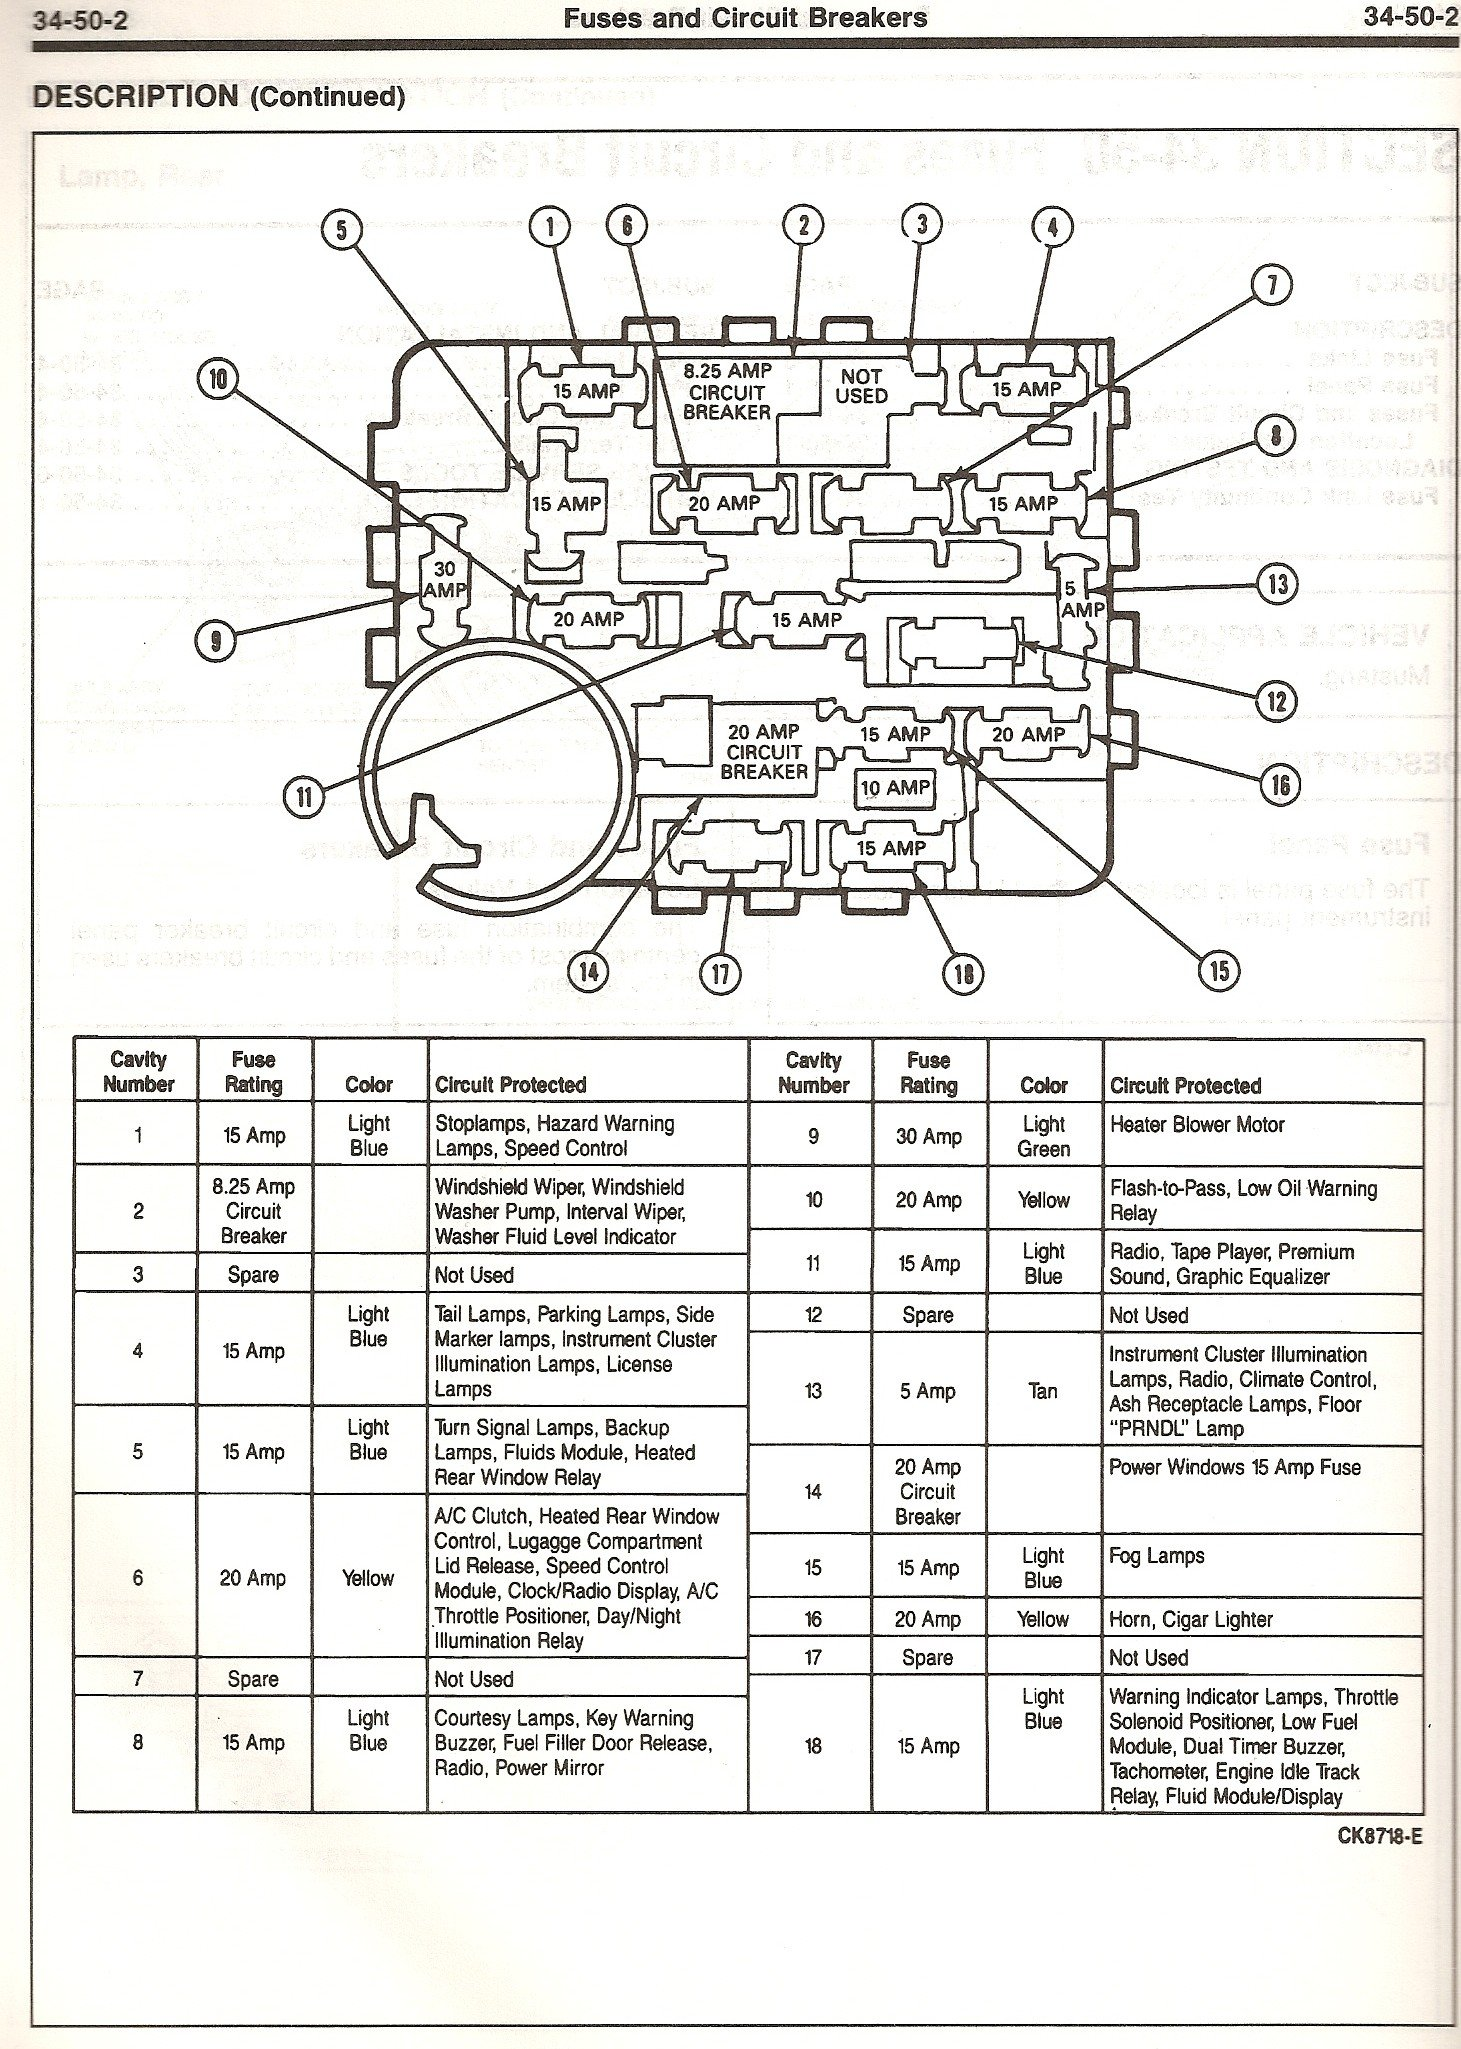 Album page in addition 6 0 Fuel Pressure Regulator together with 4th gen tech2 besides Nissan Pathfinder 2 7 1990 Specs And Images further Mach 460 Wiring Diagram. on 97 vw jetta wiring diagram